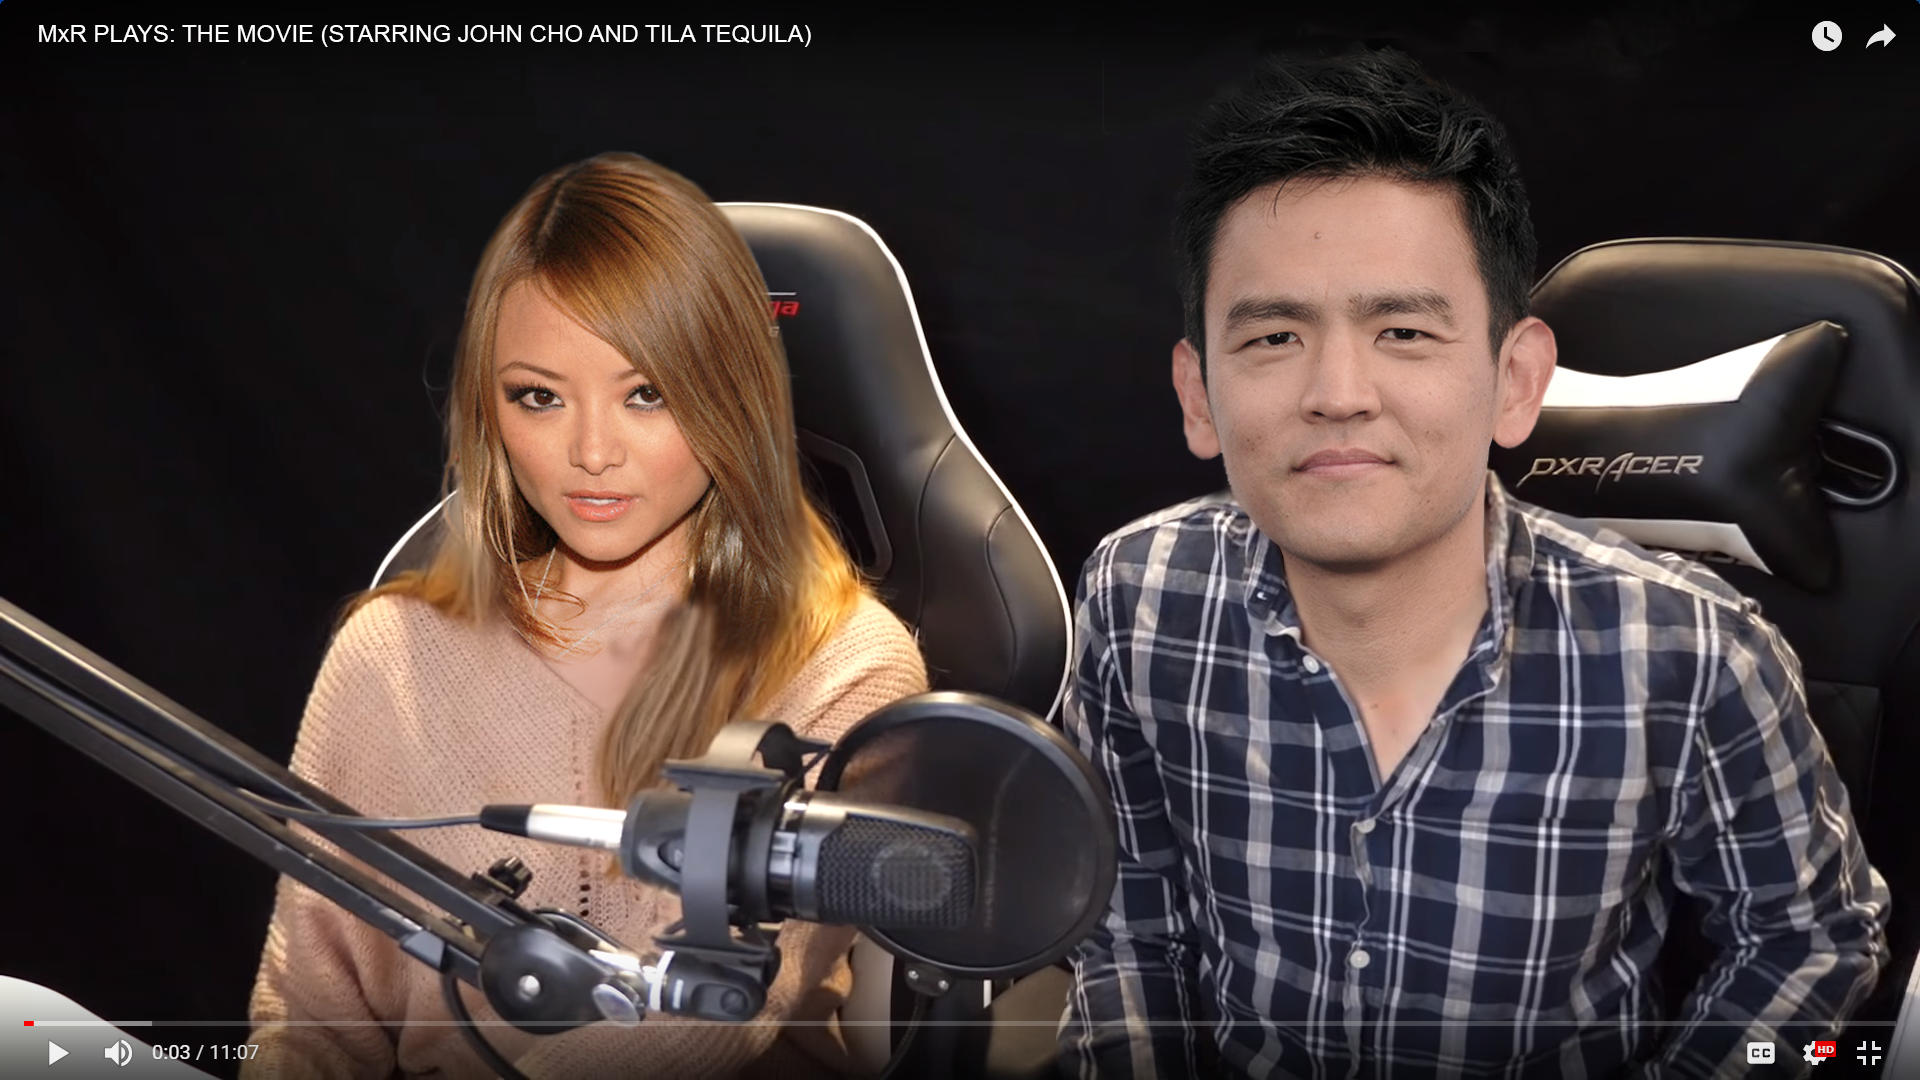 MxR PLAYS THE MOVIE STARRING JOHN CHO AND TILA TEQUILA MxRMods 1920x1080